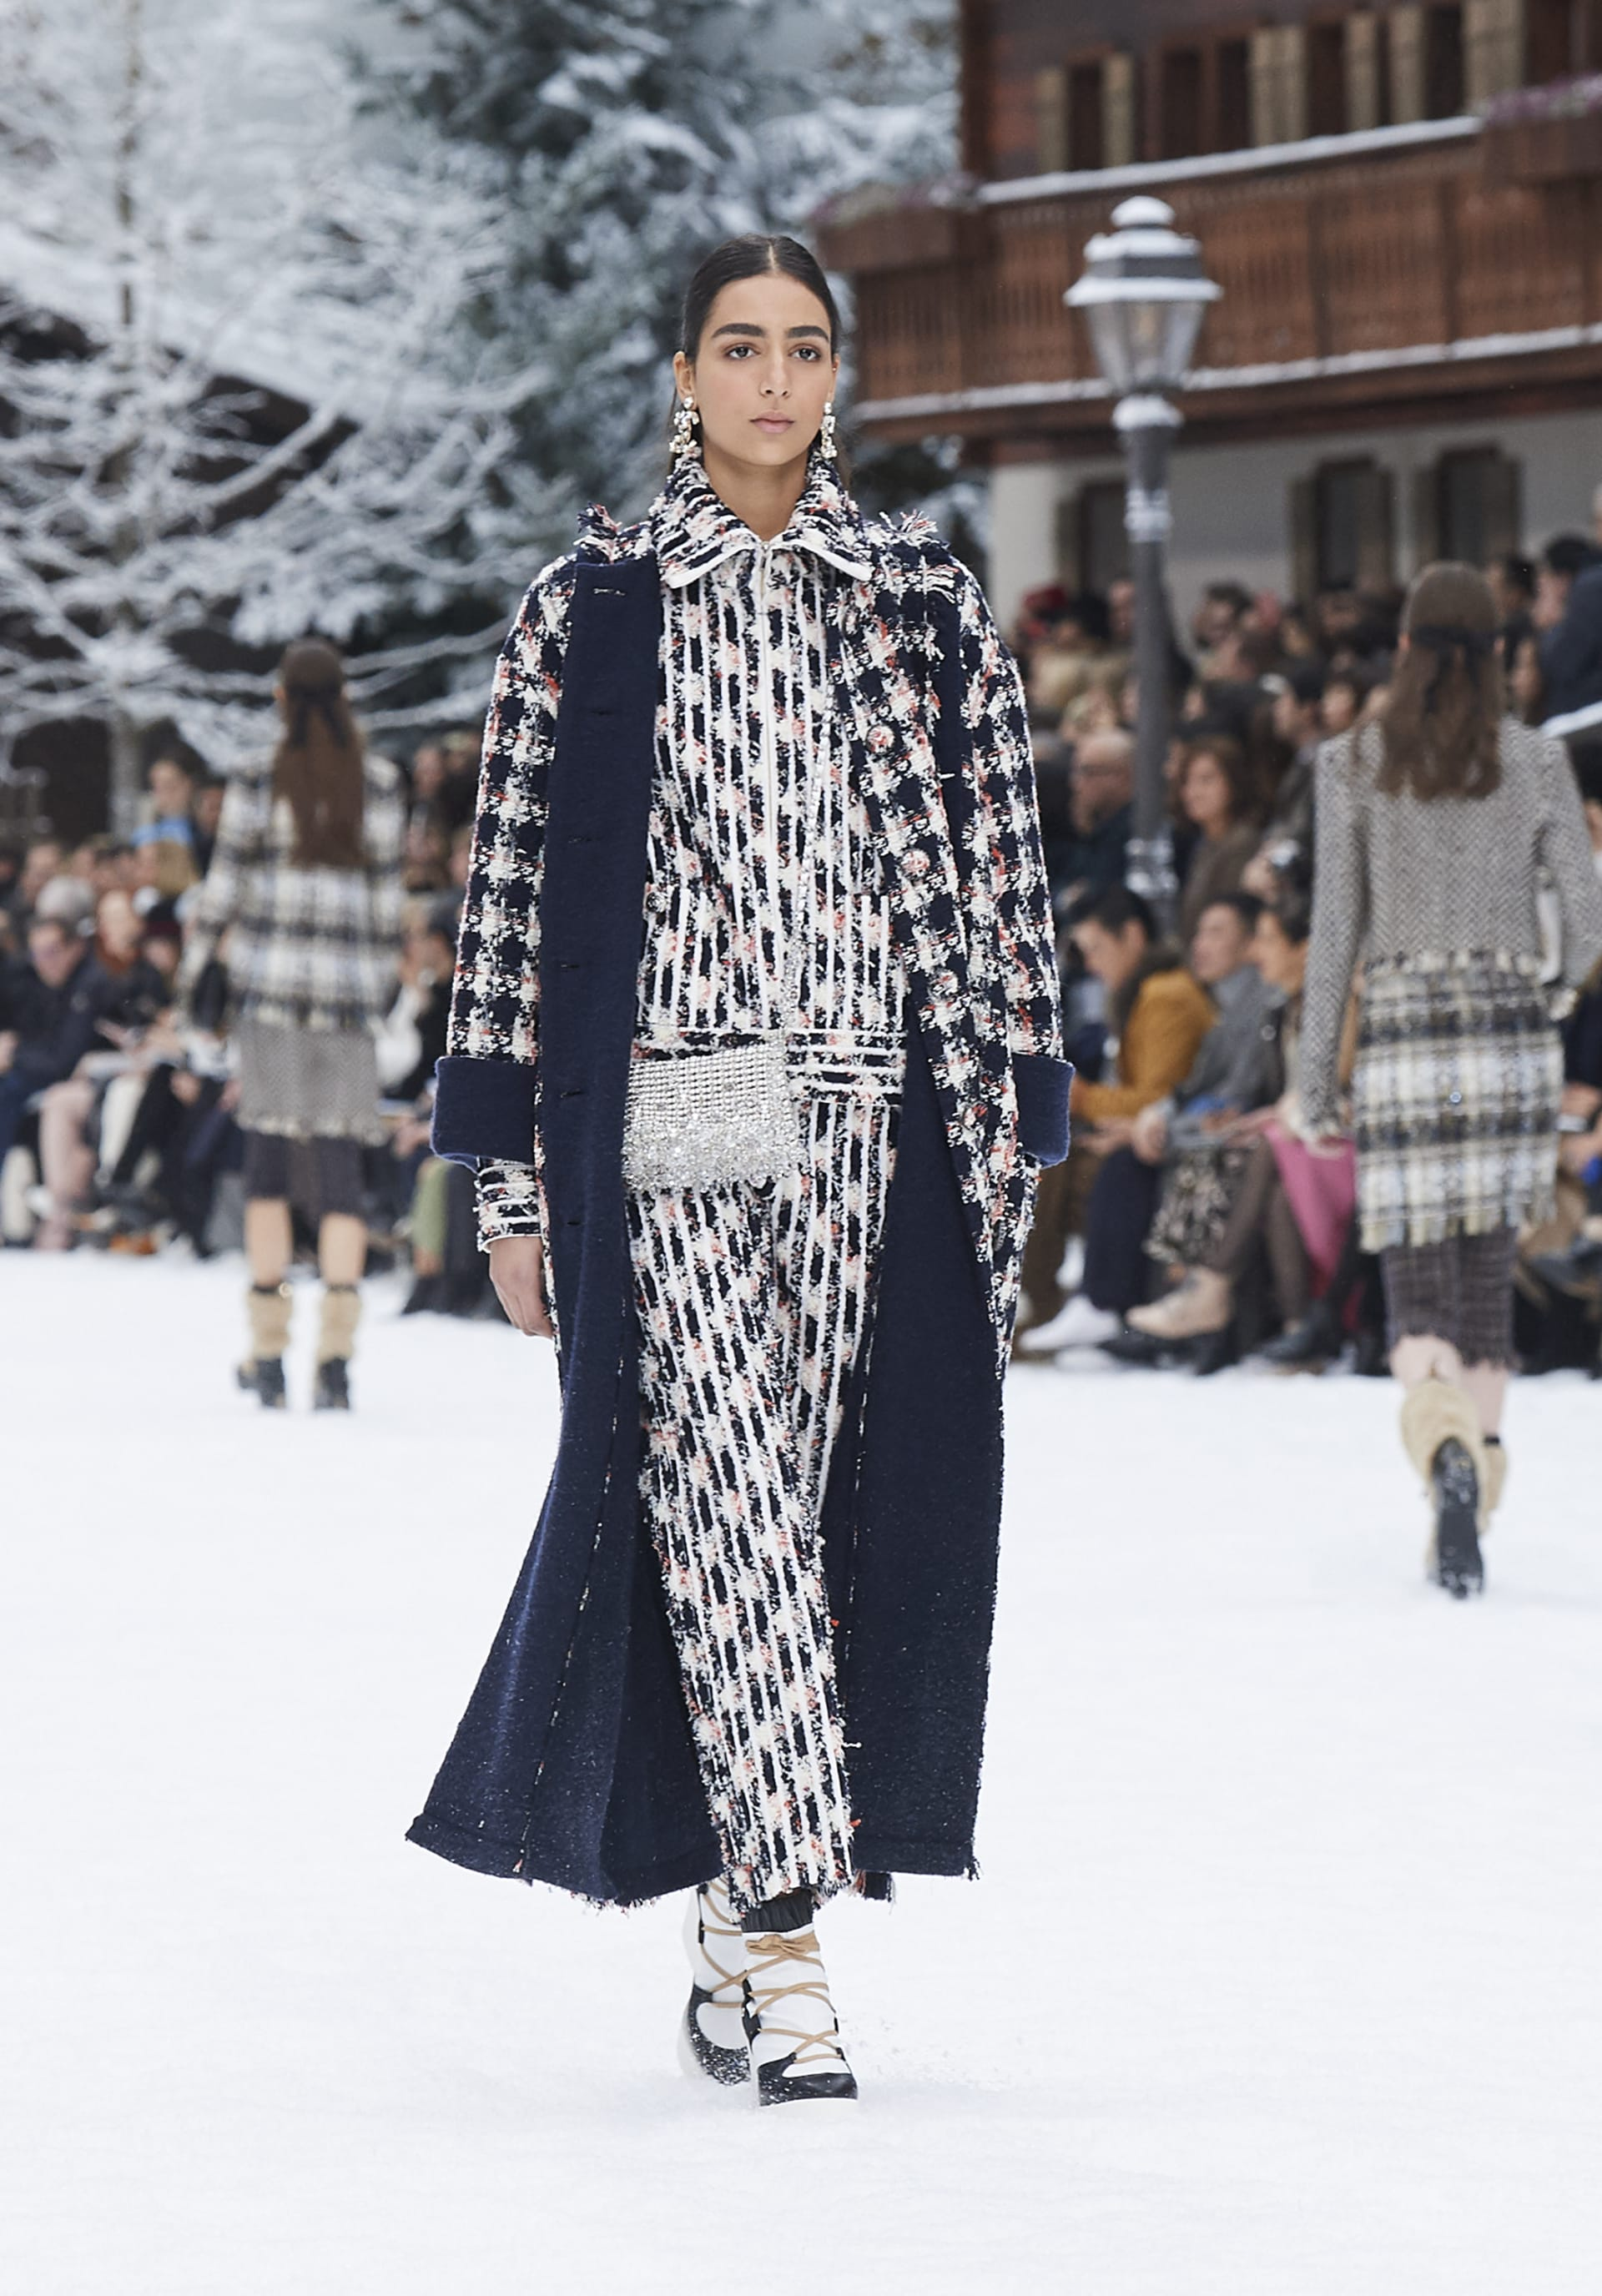 View 1 - Look 31 - Fall-Winter 2019/20